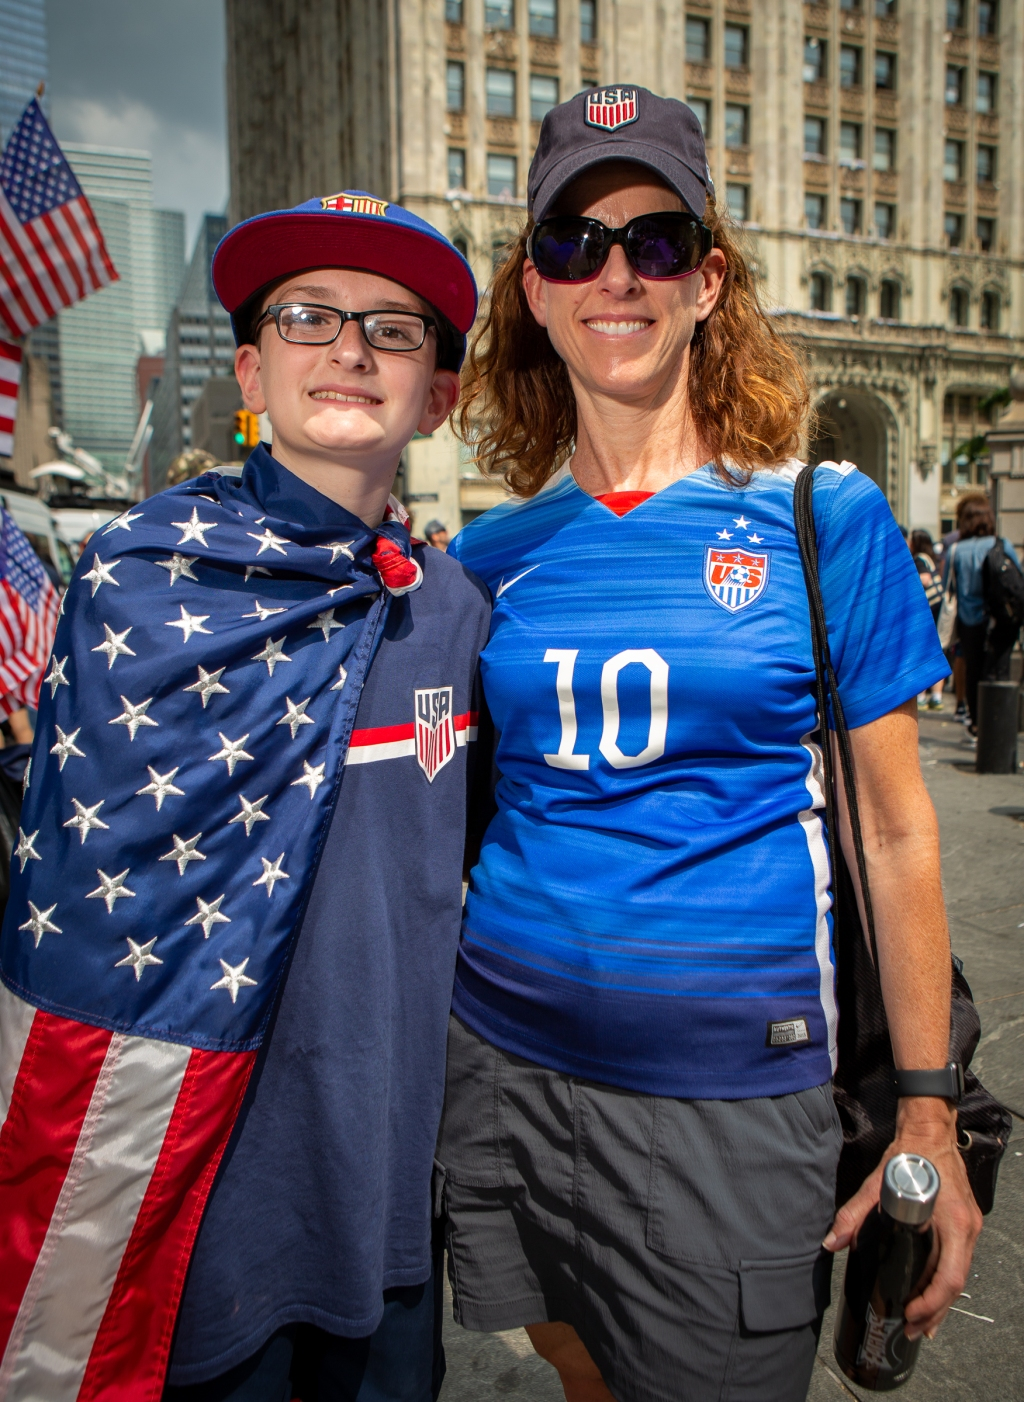 """""""It is really amazing to see them up close and in person,"""" says Michele Schreiner, 47, who took the train from Atlantic City with her 17-year-old son, Adam Schreiner. """"I've been watching them play for years, but its so exciting to be here."""""""